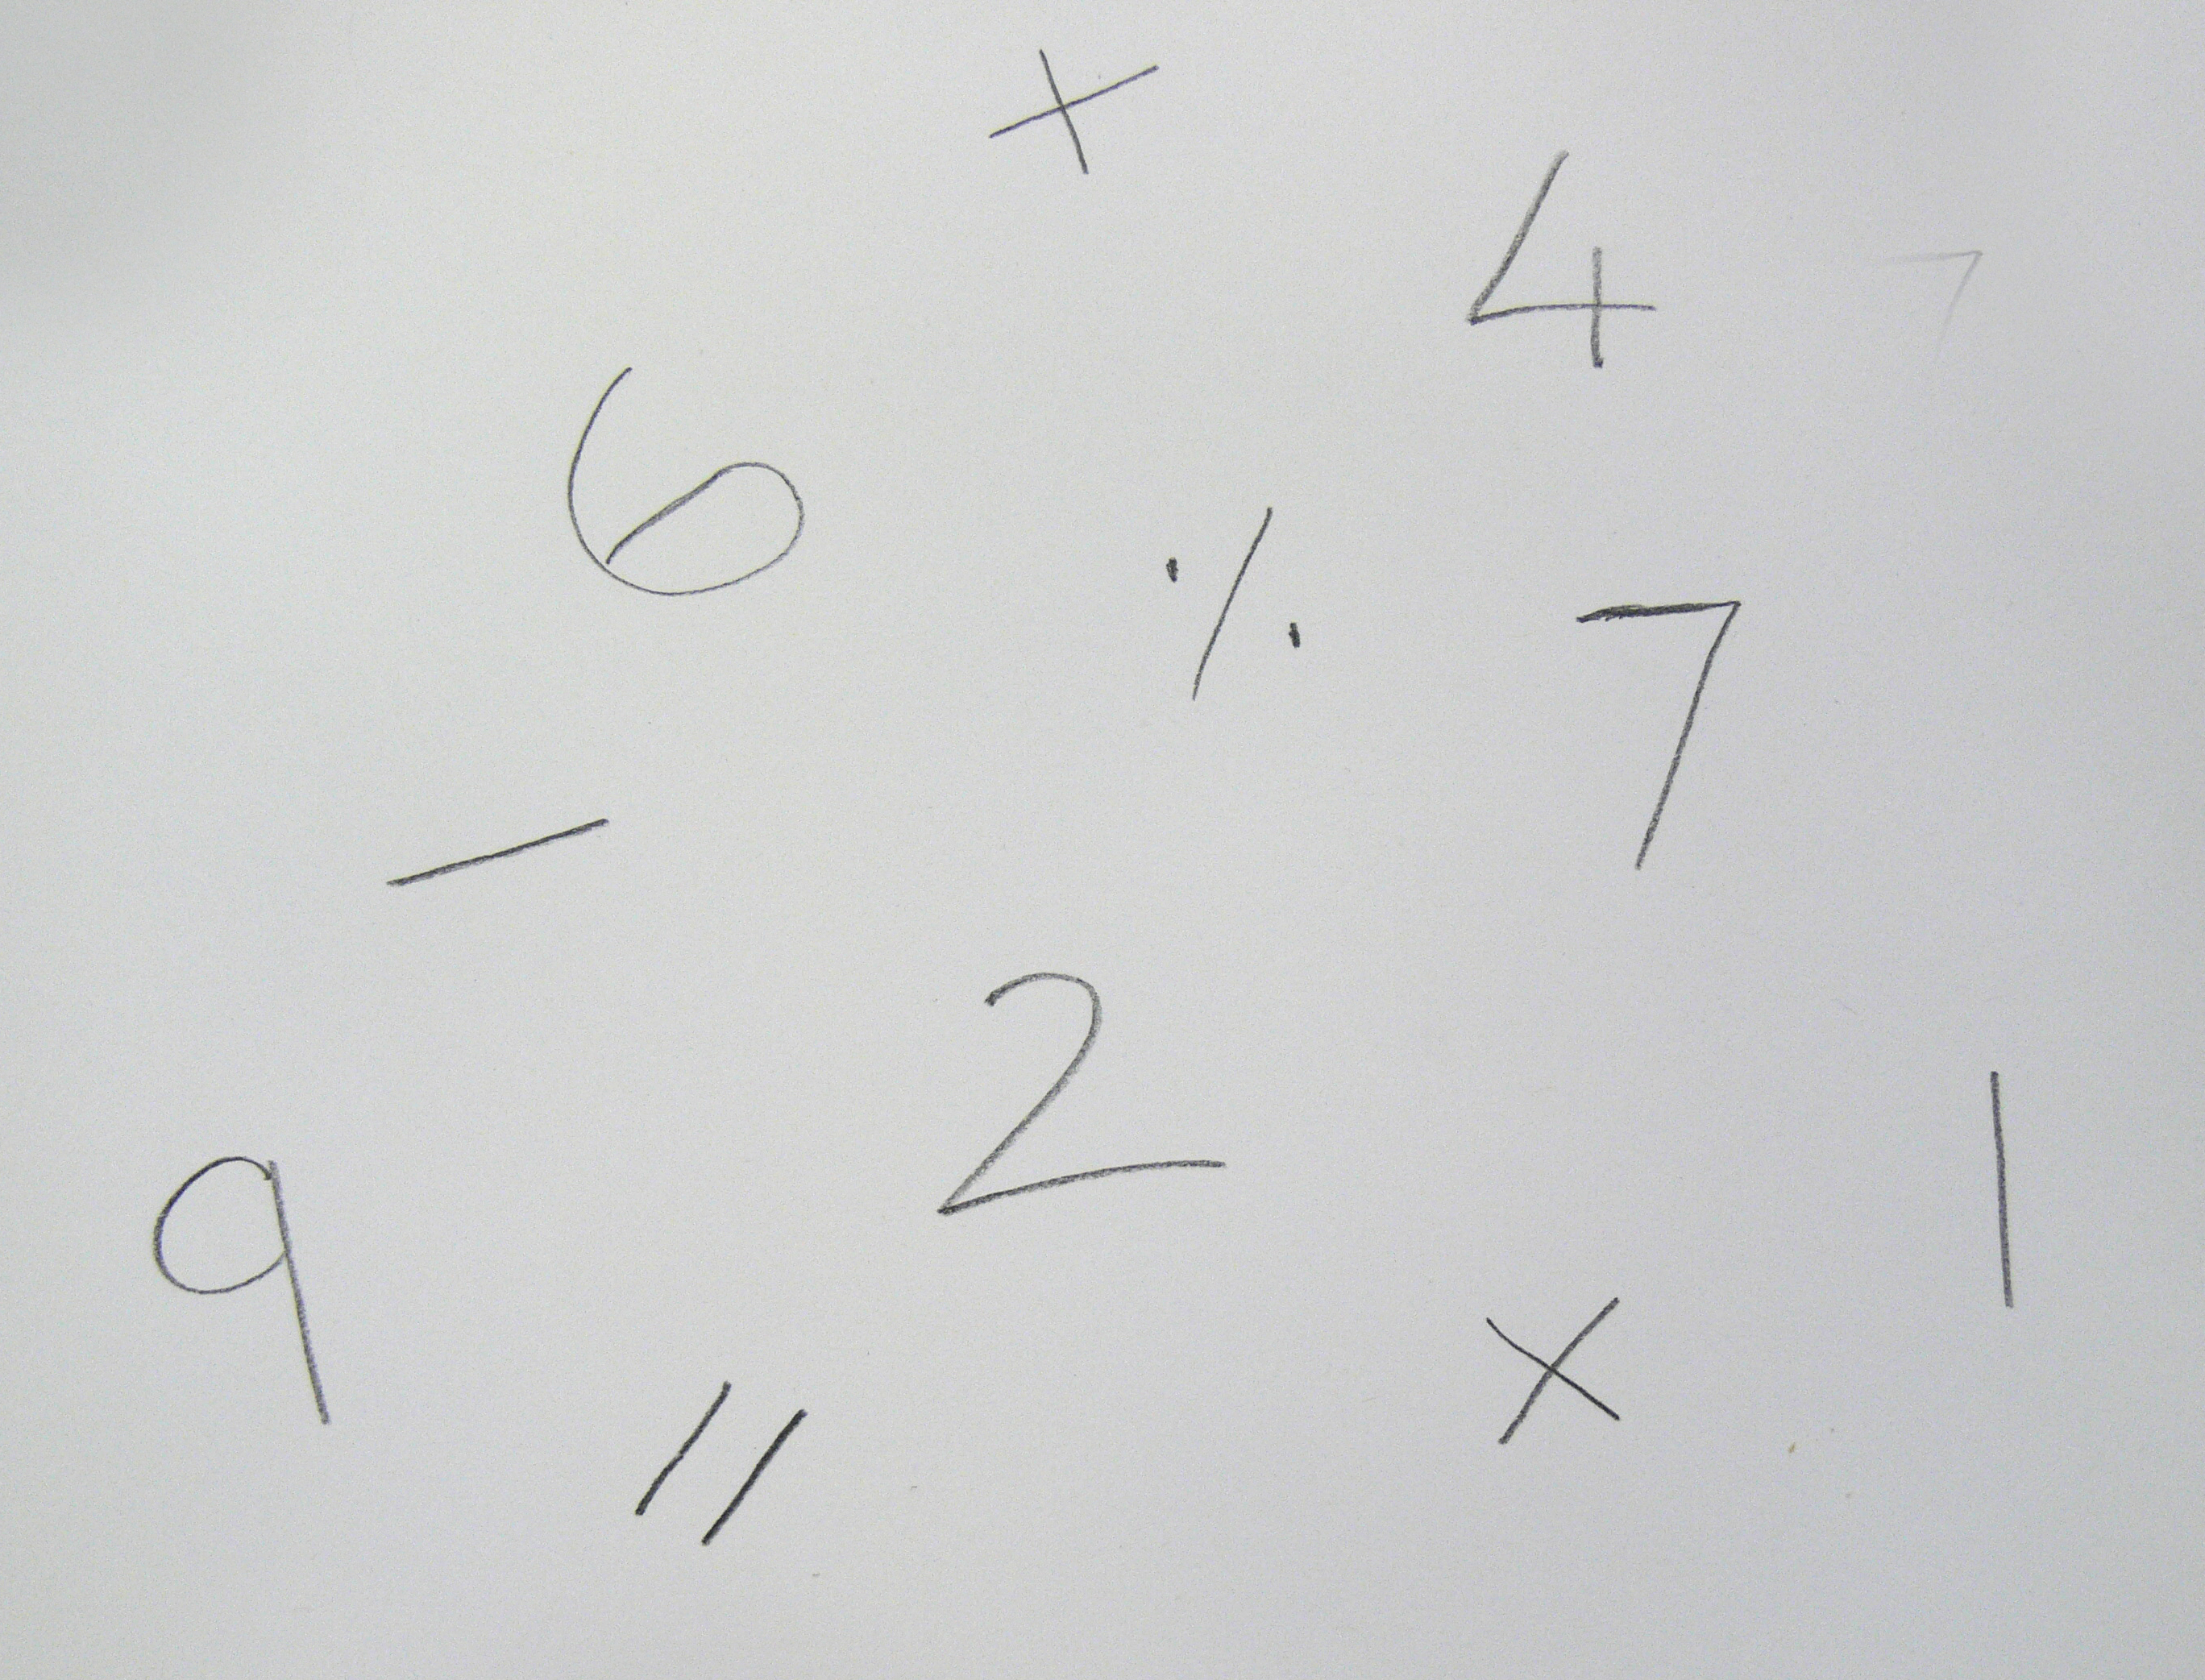 numbers 9, 6, 7, 4, 2, and 1 randomly written on paper with mathematical symbols